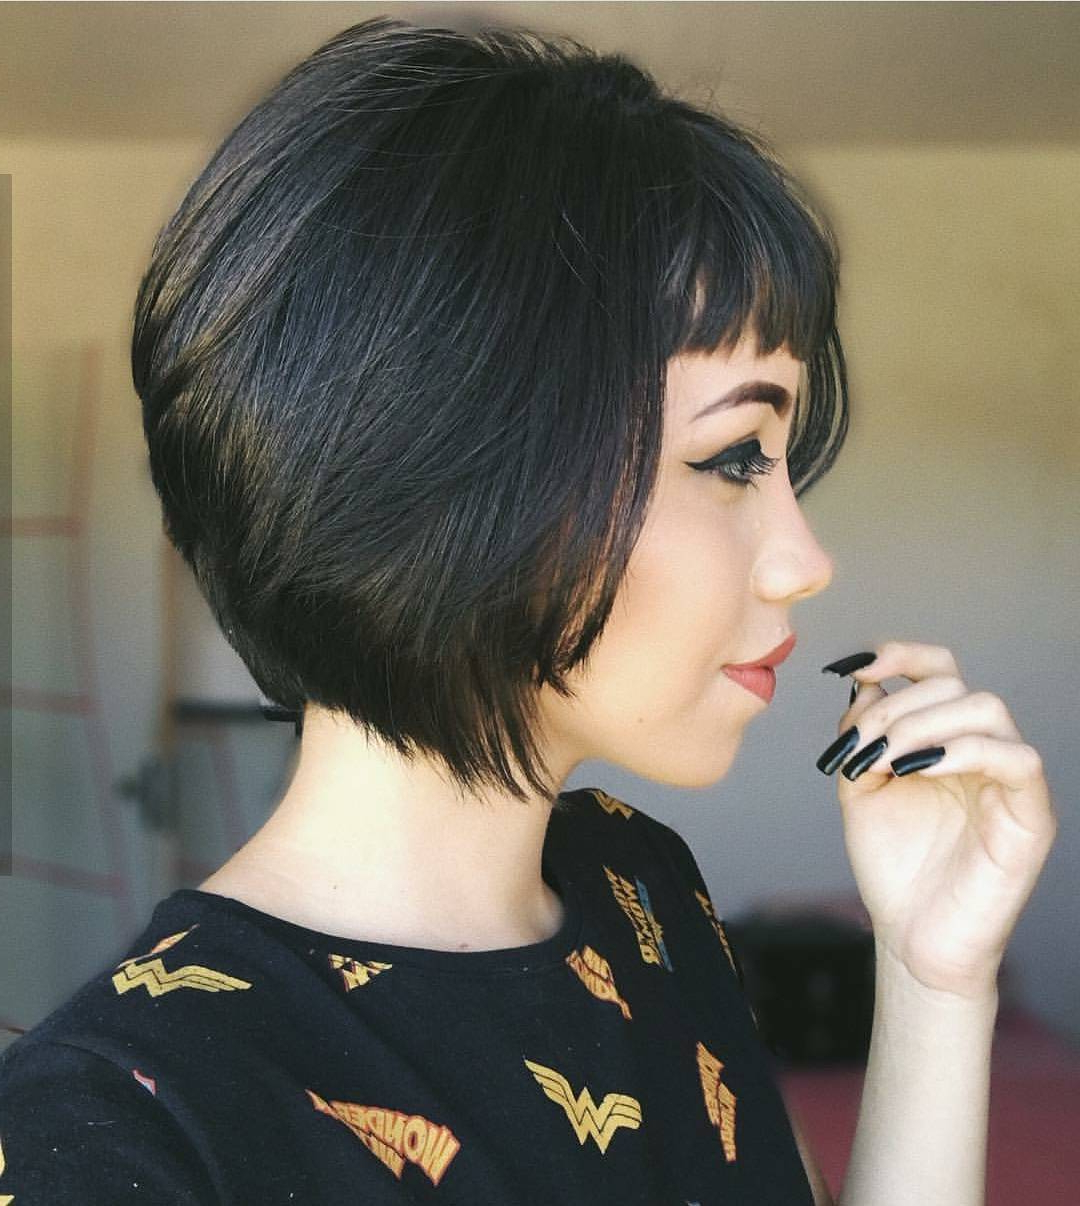 10 Chic Short Bob Haircuts That Balance Your Face Shape! – Short Throughout Short Razored Blonde Bob Haircuts With Gray Highlights (View 1 of 20)